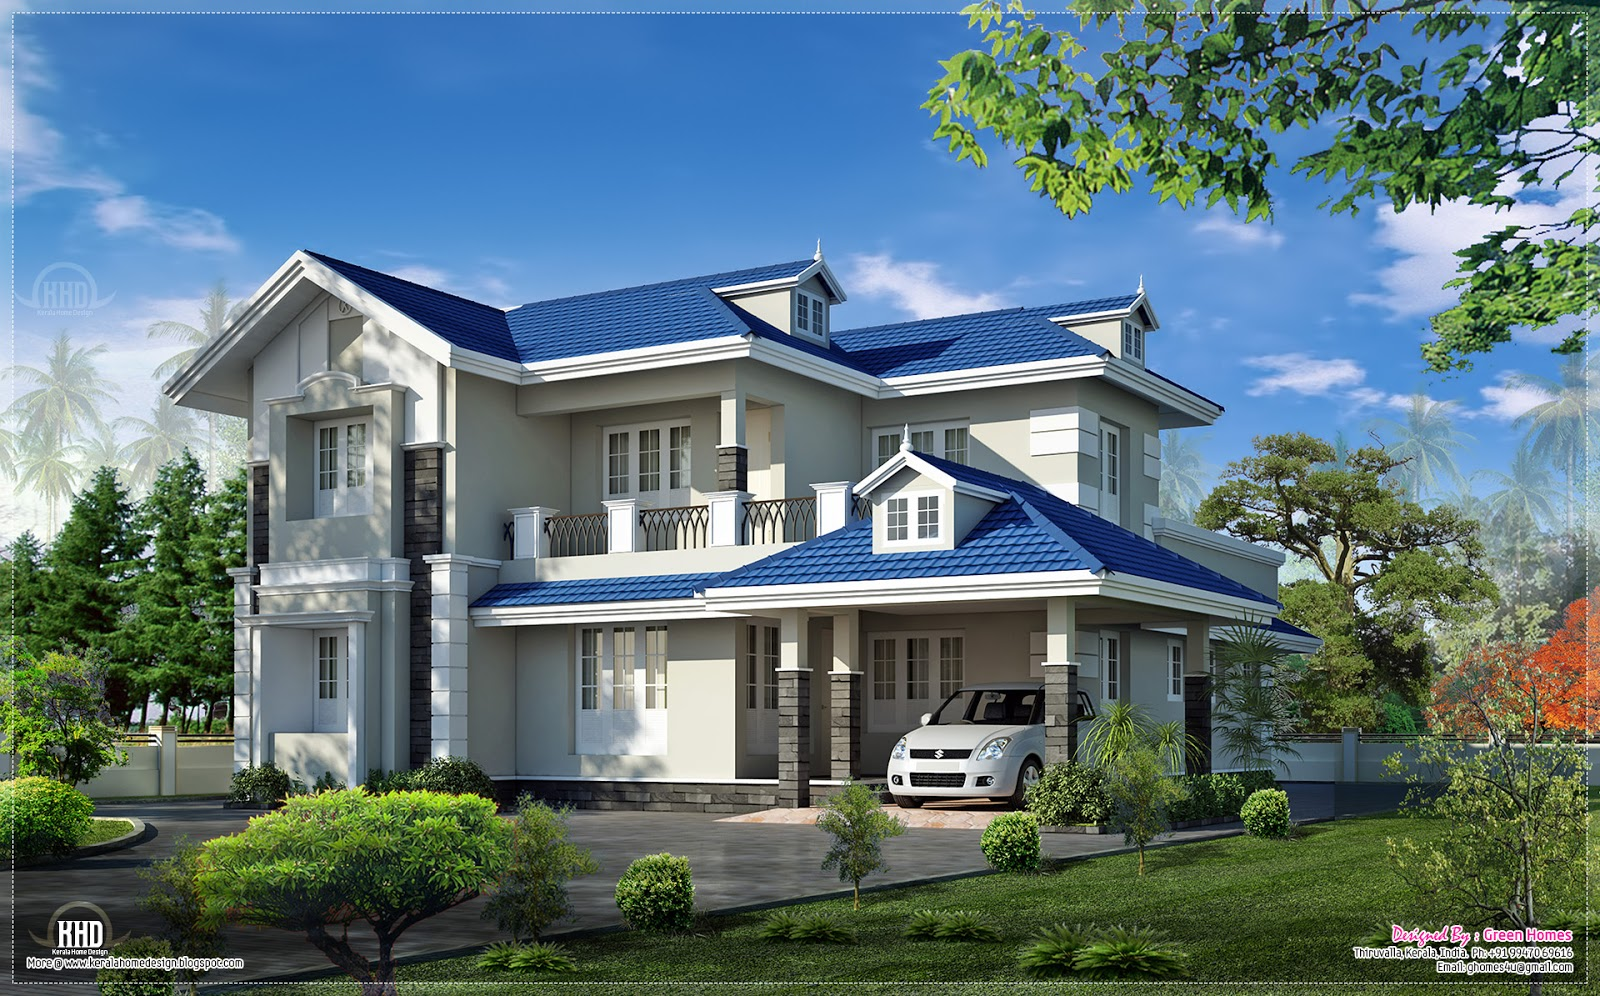 Eco friendly houses beautiful 4 bedroom villa exterior for Pics of beautiful houses